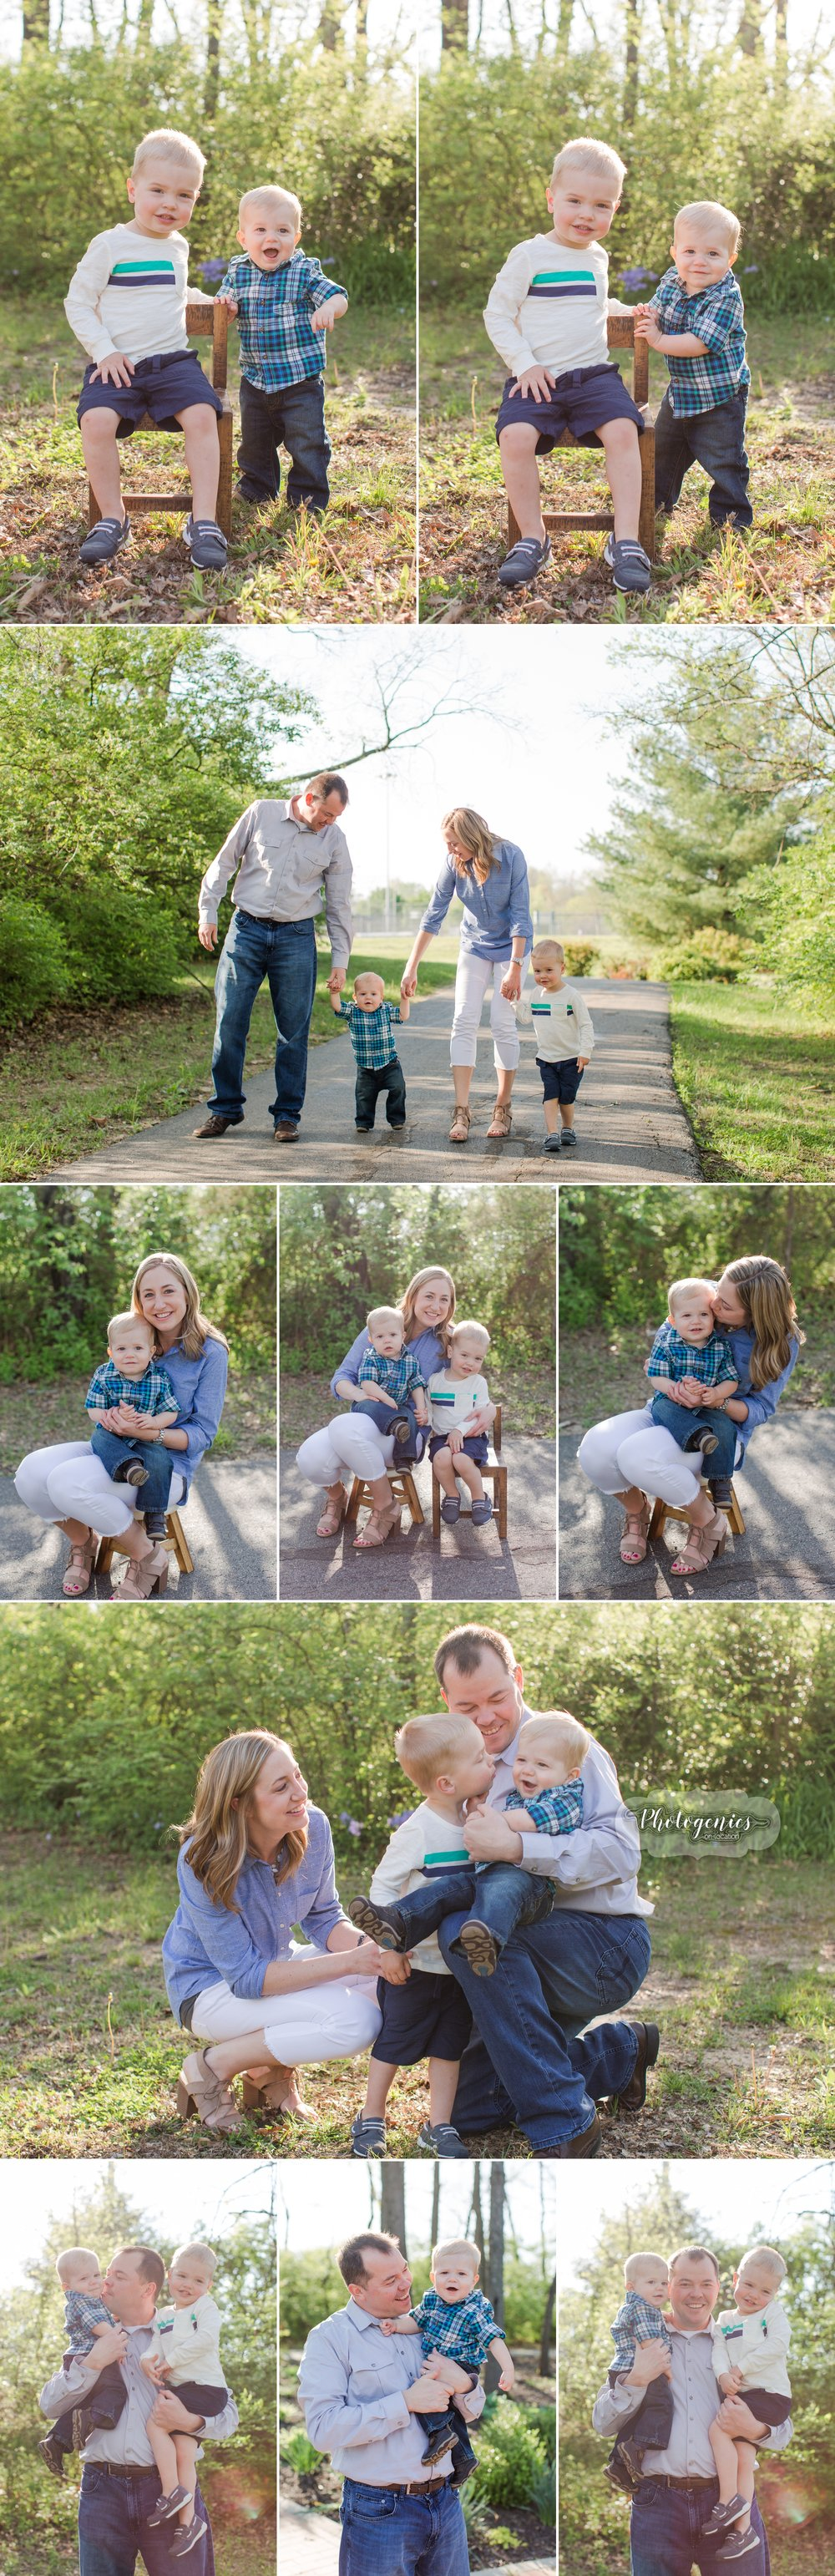 spring_morning_photography_family_of_four_poses_quilt_props_baby_brothers_mom_dad_ideas_photography_missouri_photographer 1